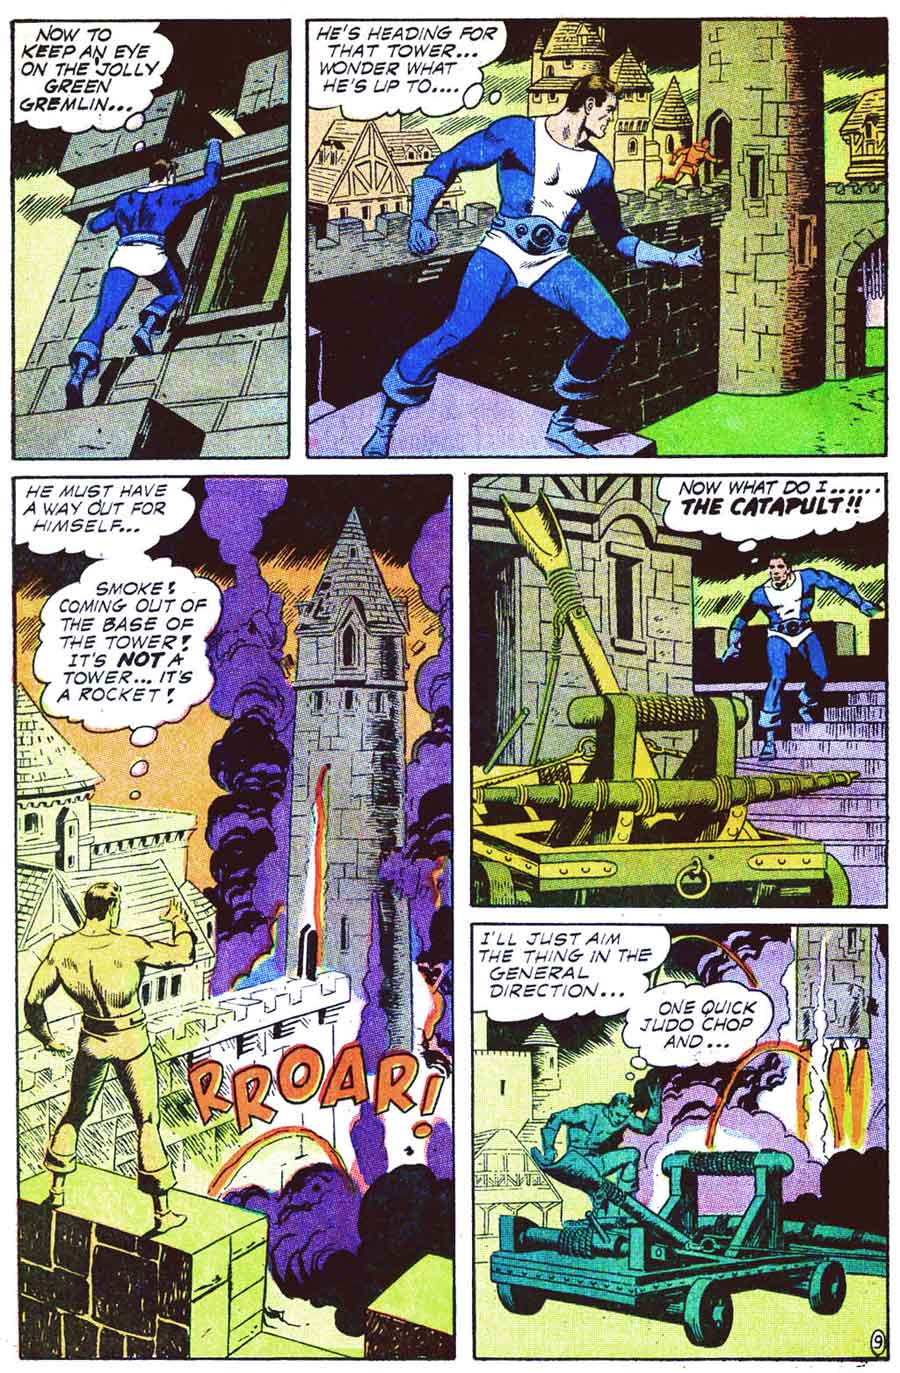 Thunder Agents v1 #8 tower silver age 1960s comic book page art by Wally Wood